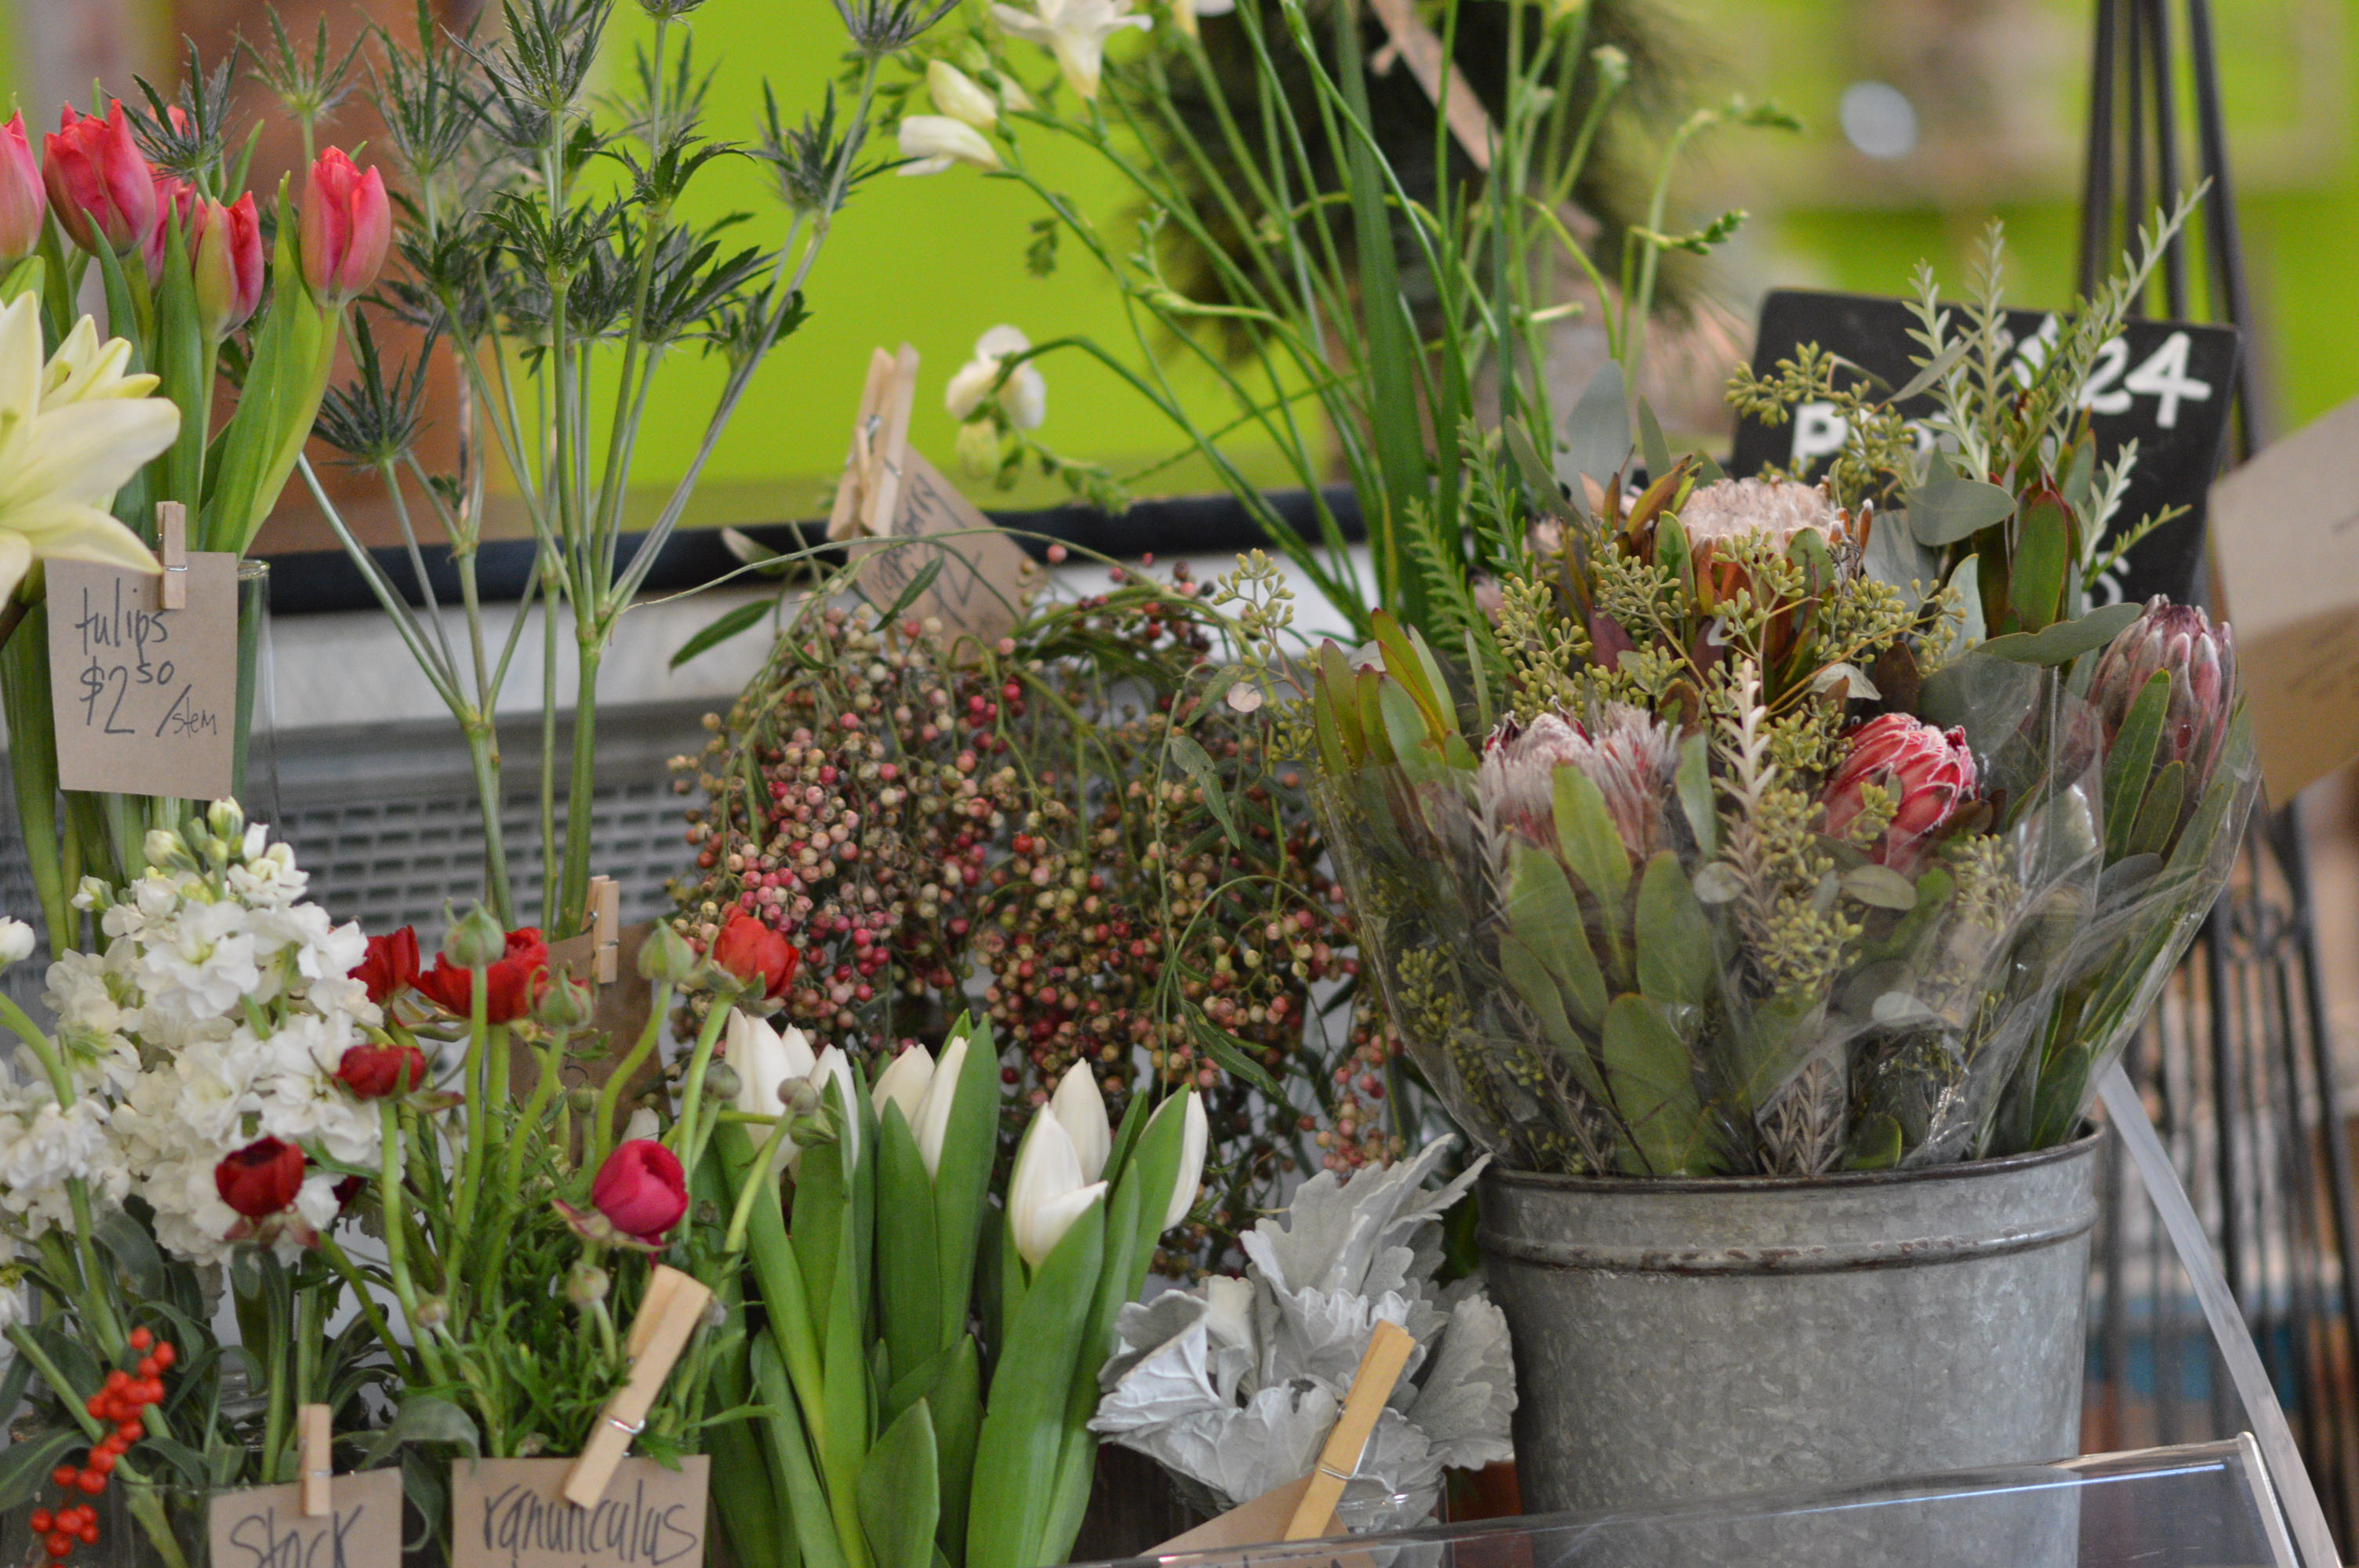 Flowers that bloom in winter months - Protea Bouquets Are Sold Alongside Tulips And Other Flowers During Winter Months At Bark Bloom